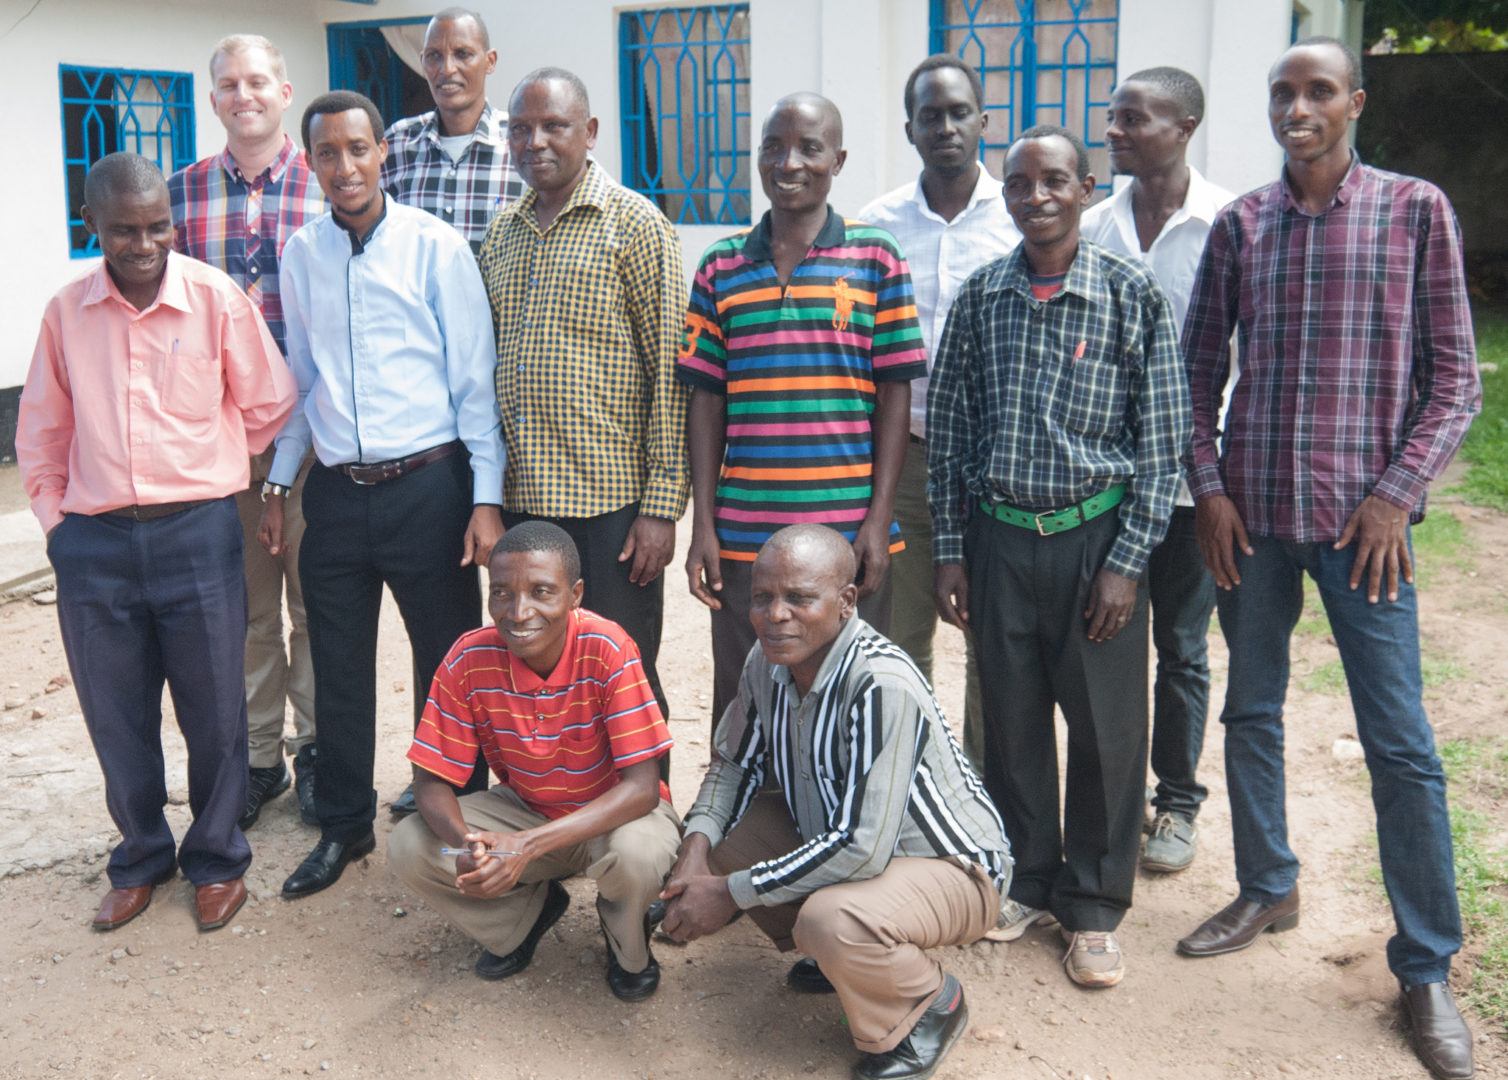 Plant With Purpose Congo's staff aims to reconcile all tribes.